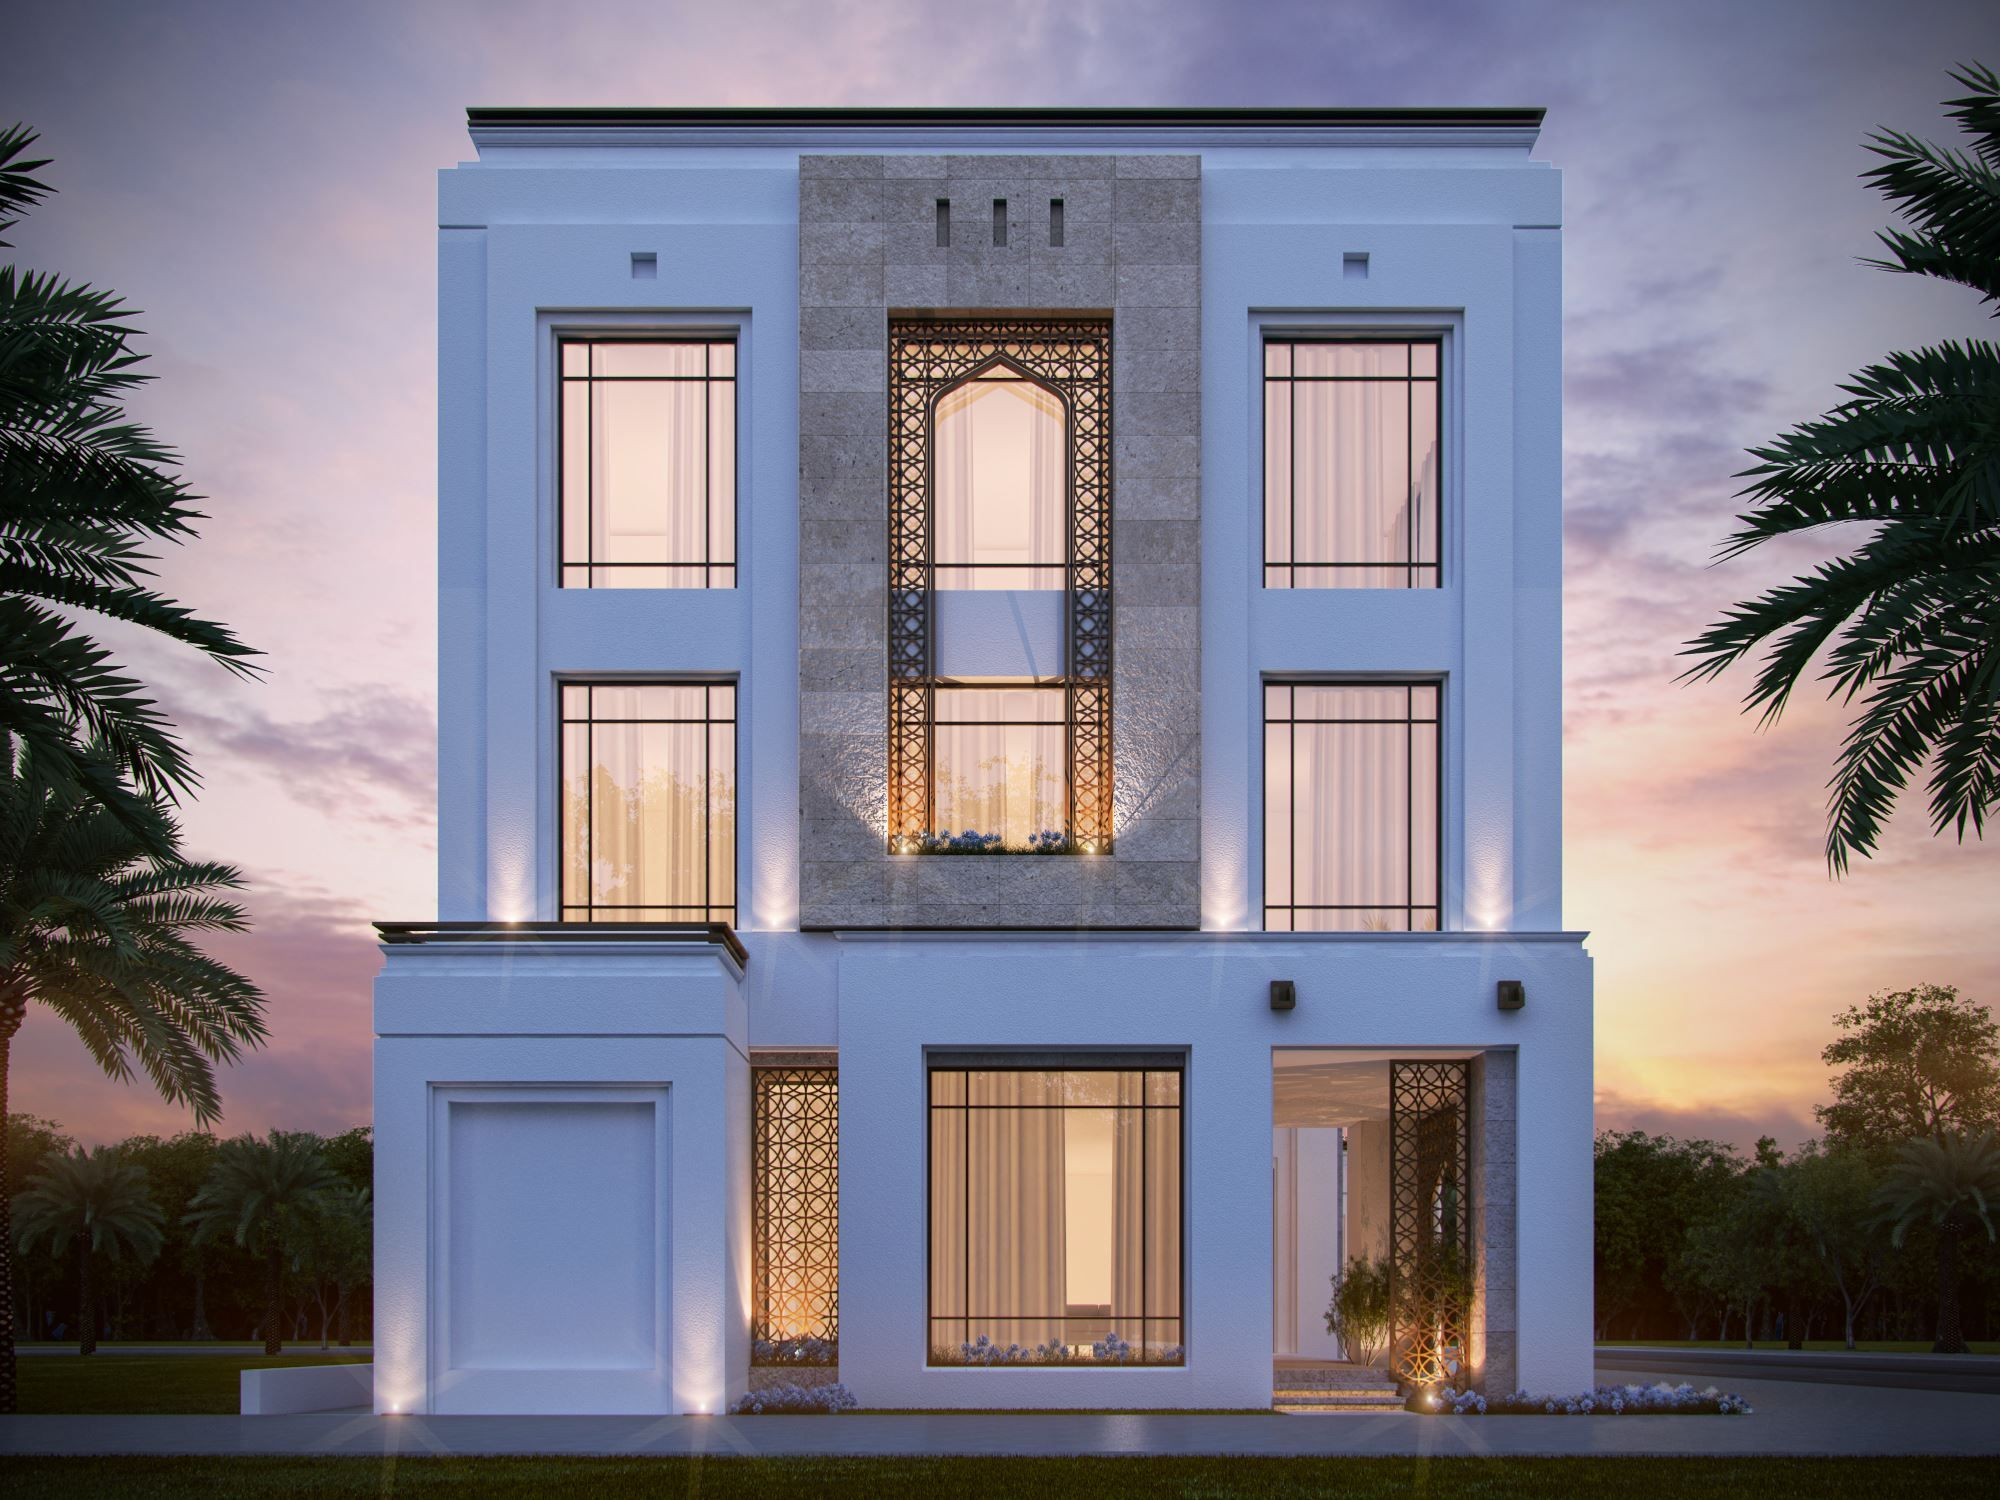 Private villa 400 m kuwait sarah sadeq architects sarah for Modern house villa